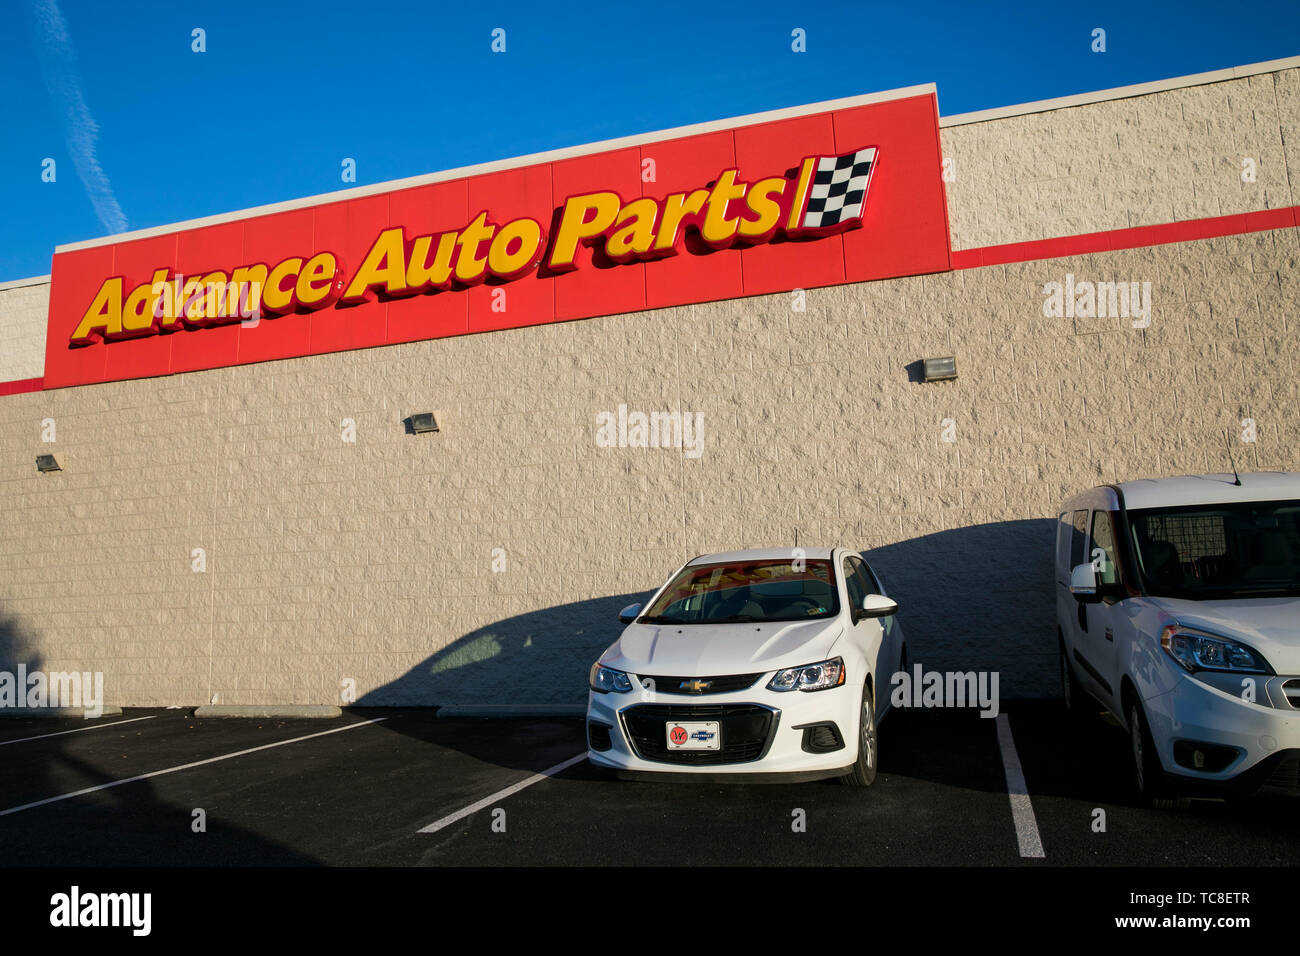 A logo sign outside of a Advance Auto Parts retail store location in Falling Waters, West Virginia on June 4, 2019. - Stock Image